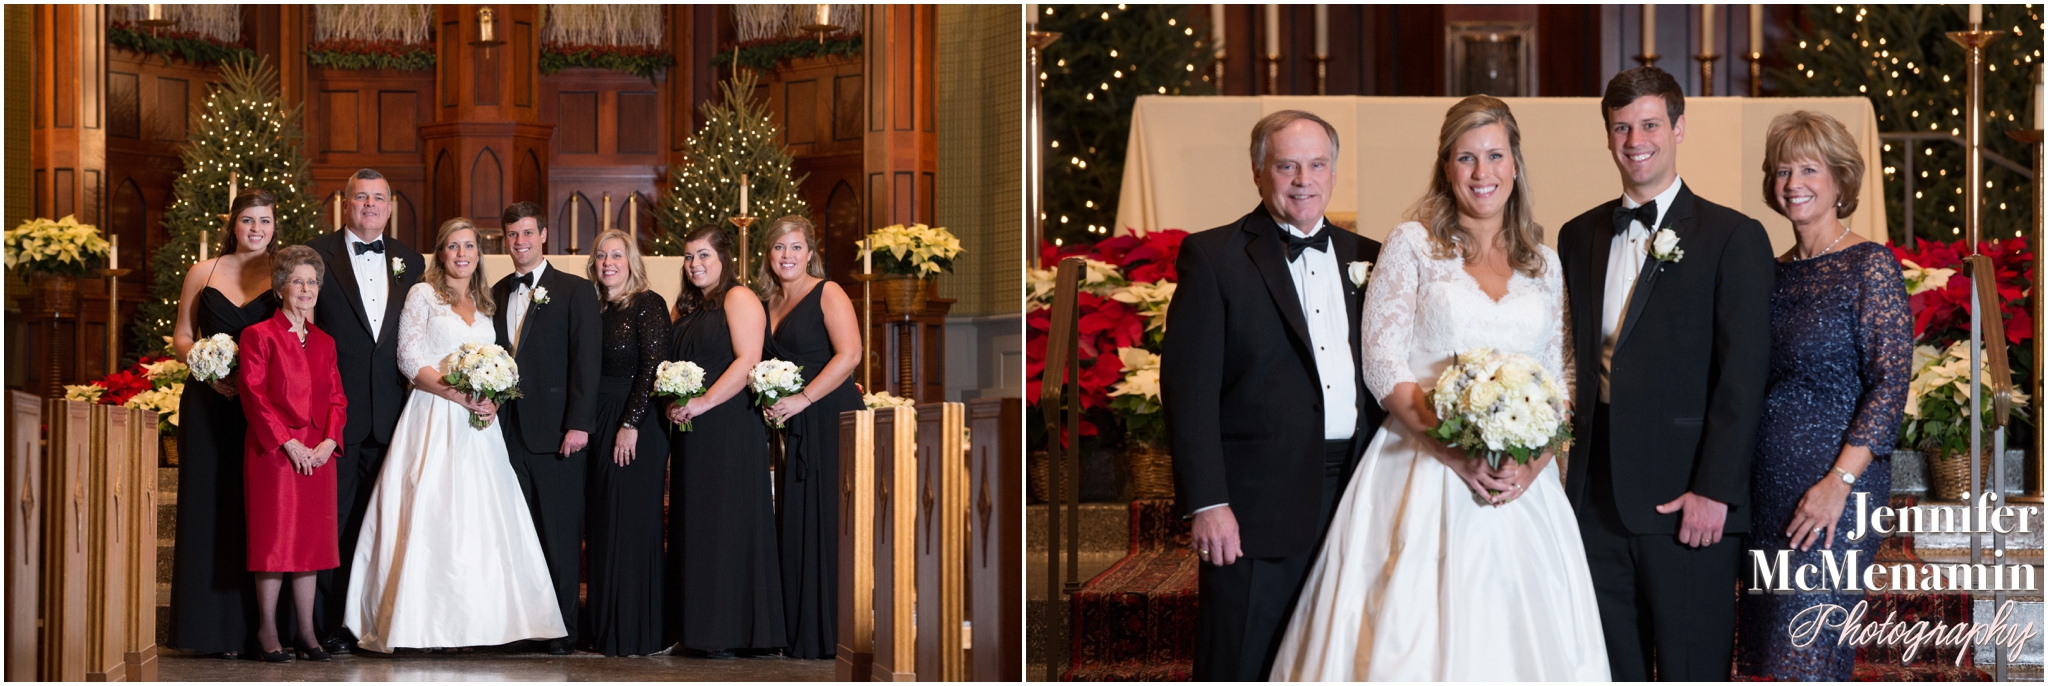 0058_RyanClemmens_01728-0459_JenniferMcMenaminPhotography_Immaculate-Conception-Church_The-Cloisters_Baltimore-wedding-photography_Baltimore-wedding-photographer